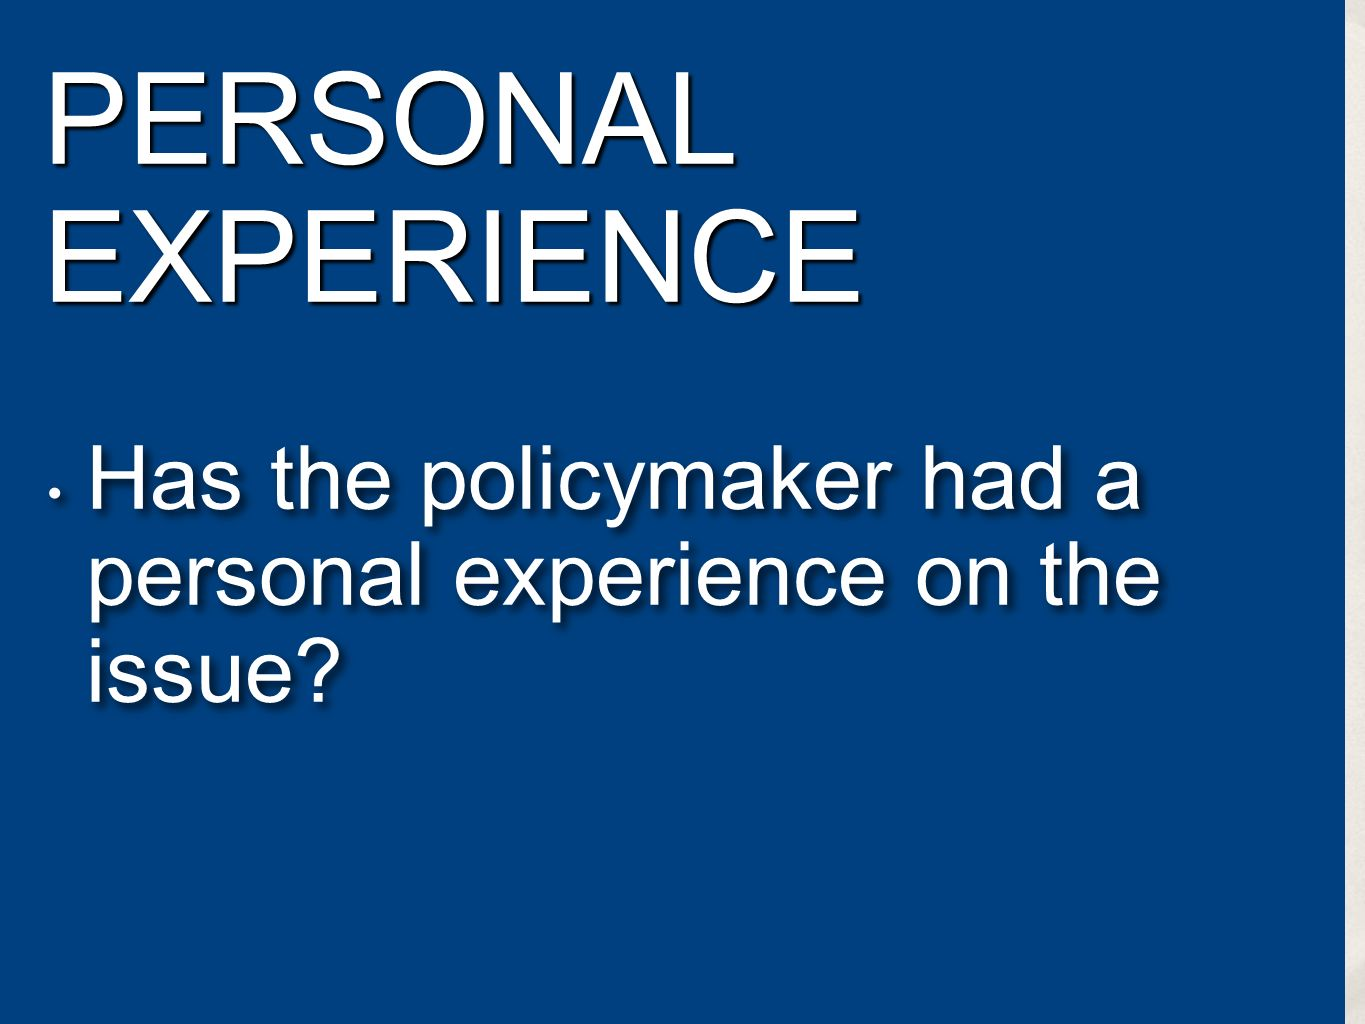 PERSONAL EXPERIENCE Has the policymaker had a personal experience on the issue? Has the policymaker had a personal experience on the issue?